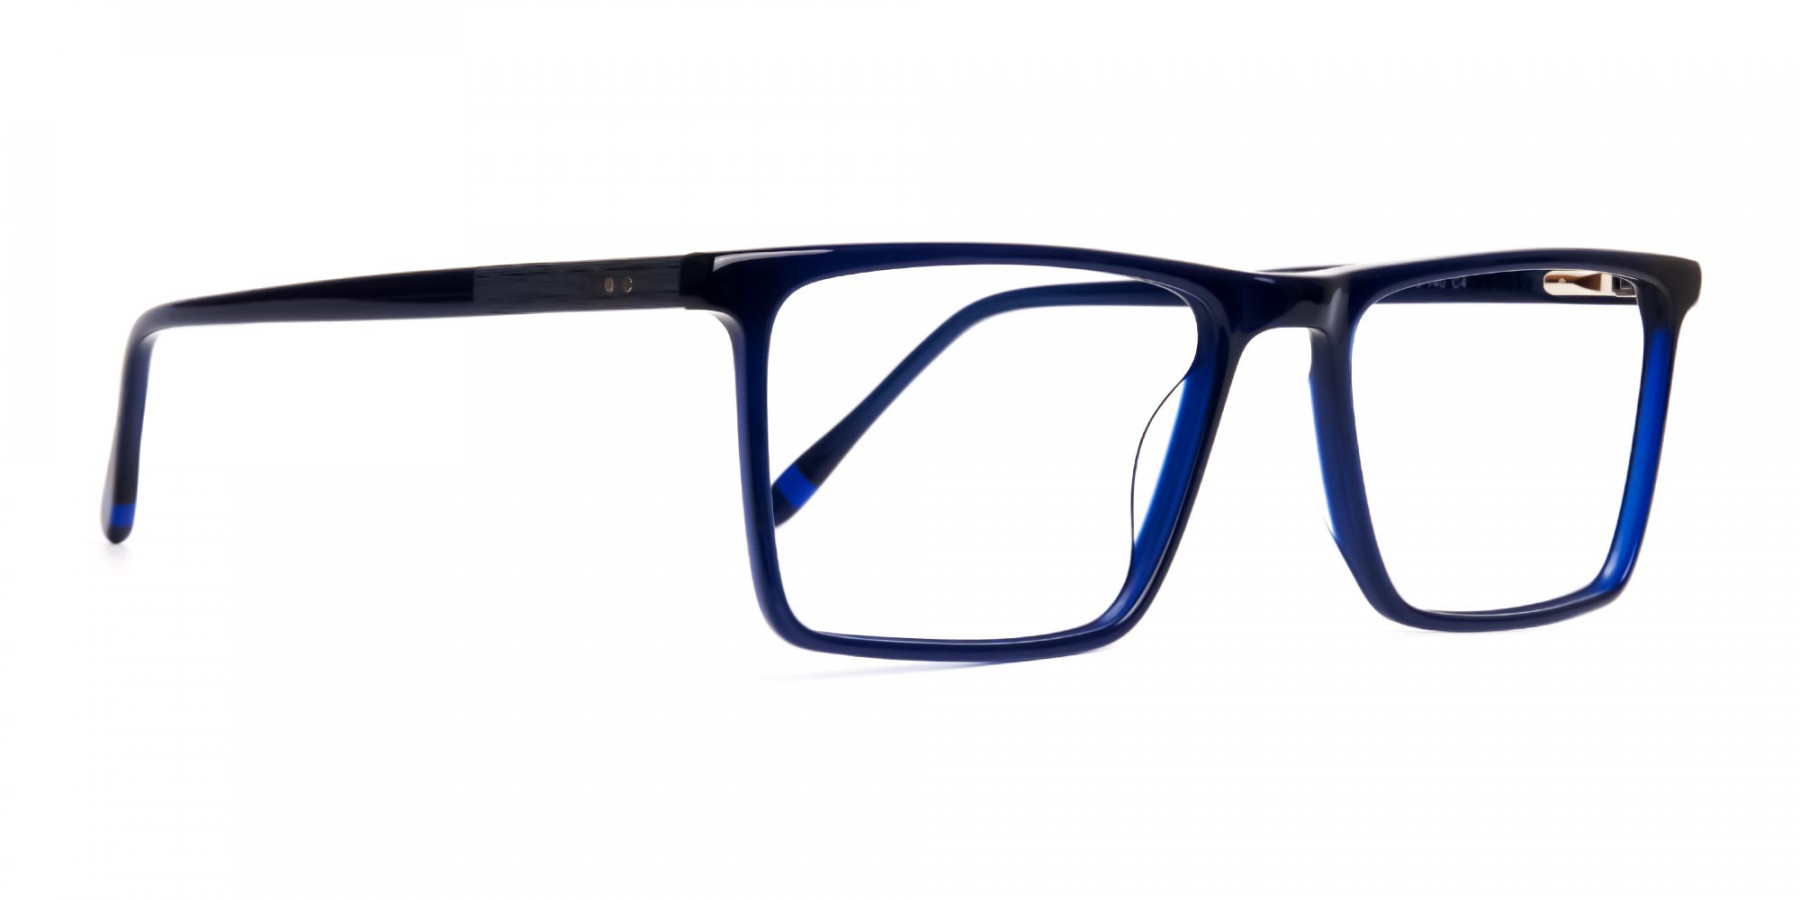 indigo-blue-full-rim-rectangular-glasses-frames-1